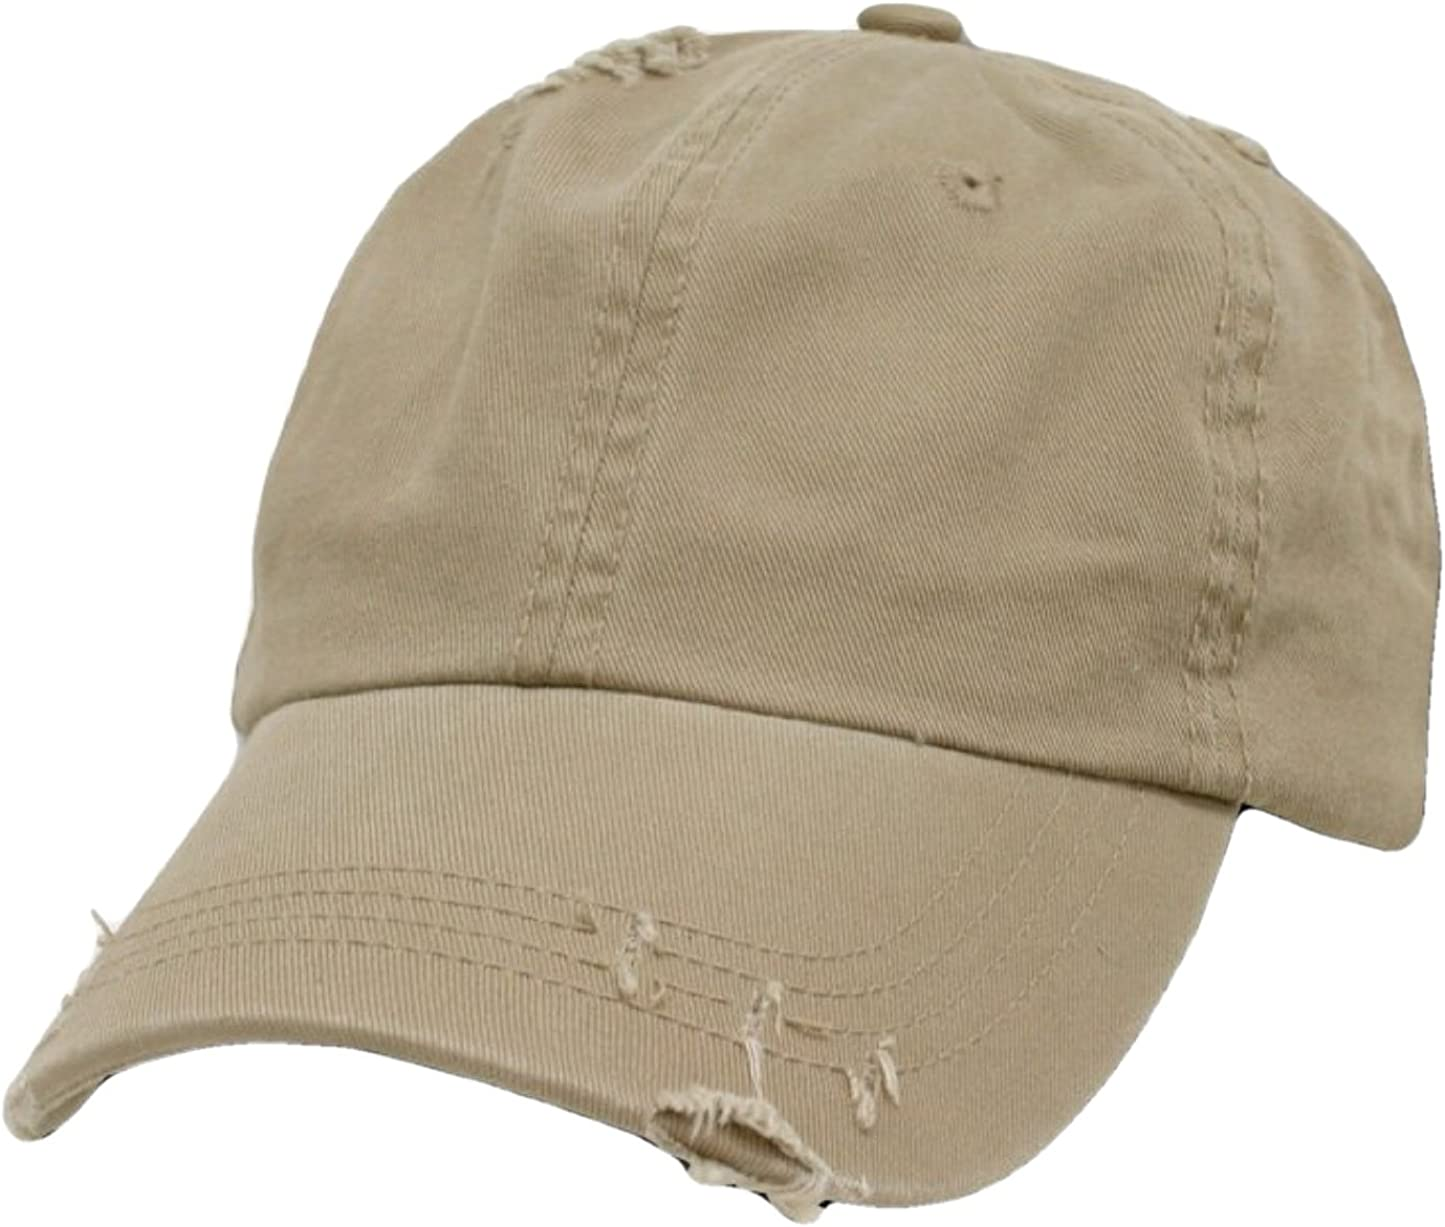 DECKY Distressed Vintage Polo Style Low Profile Baseball Cap